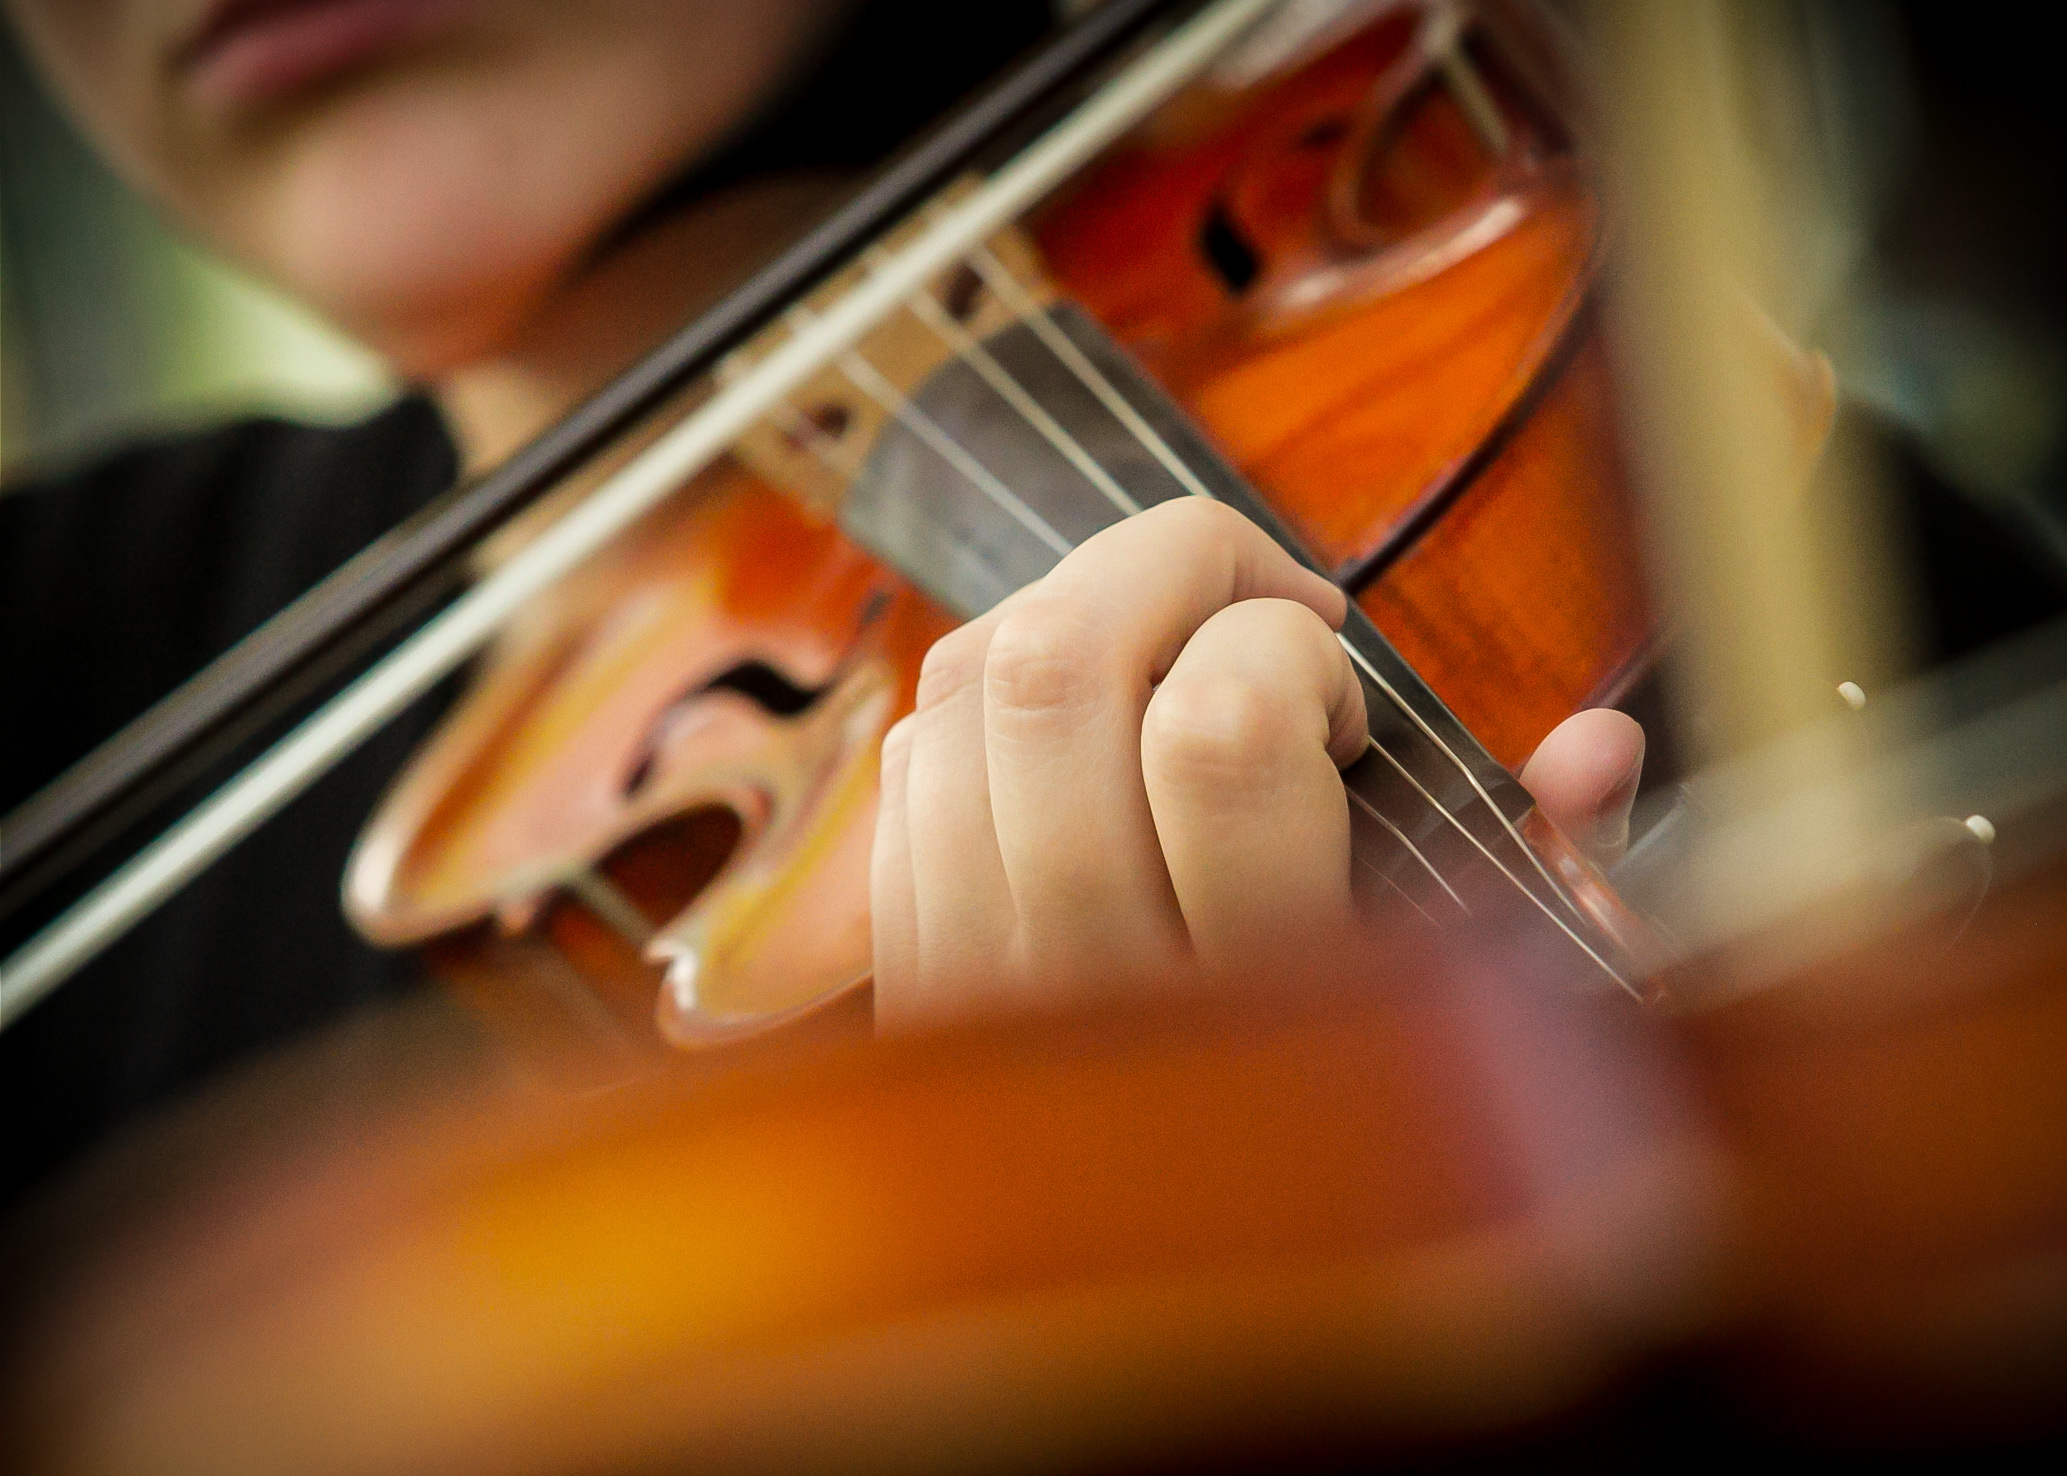 http://harrisacademyofthearts.com/wp-content/uploads/2013/08/Wehner_violin_close_up_harris_academy_of_the_arts_wedding_musicians.jpg